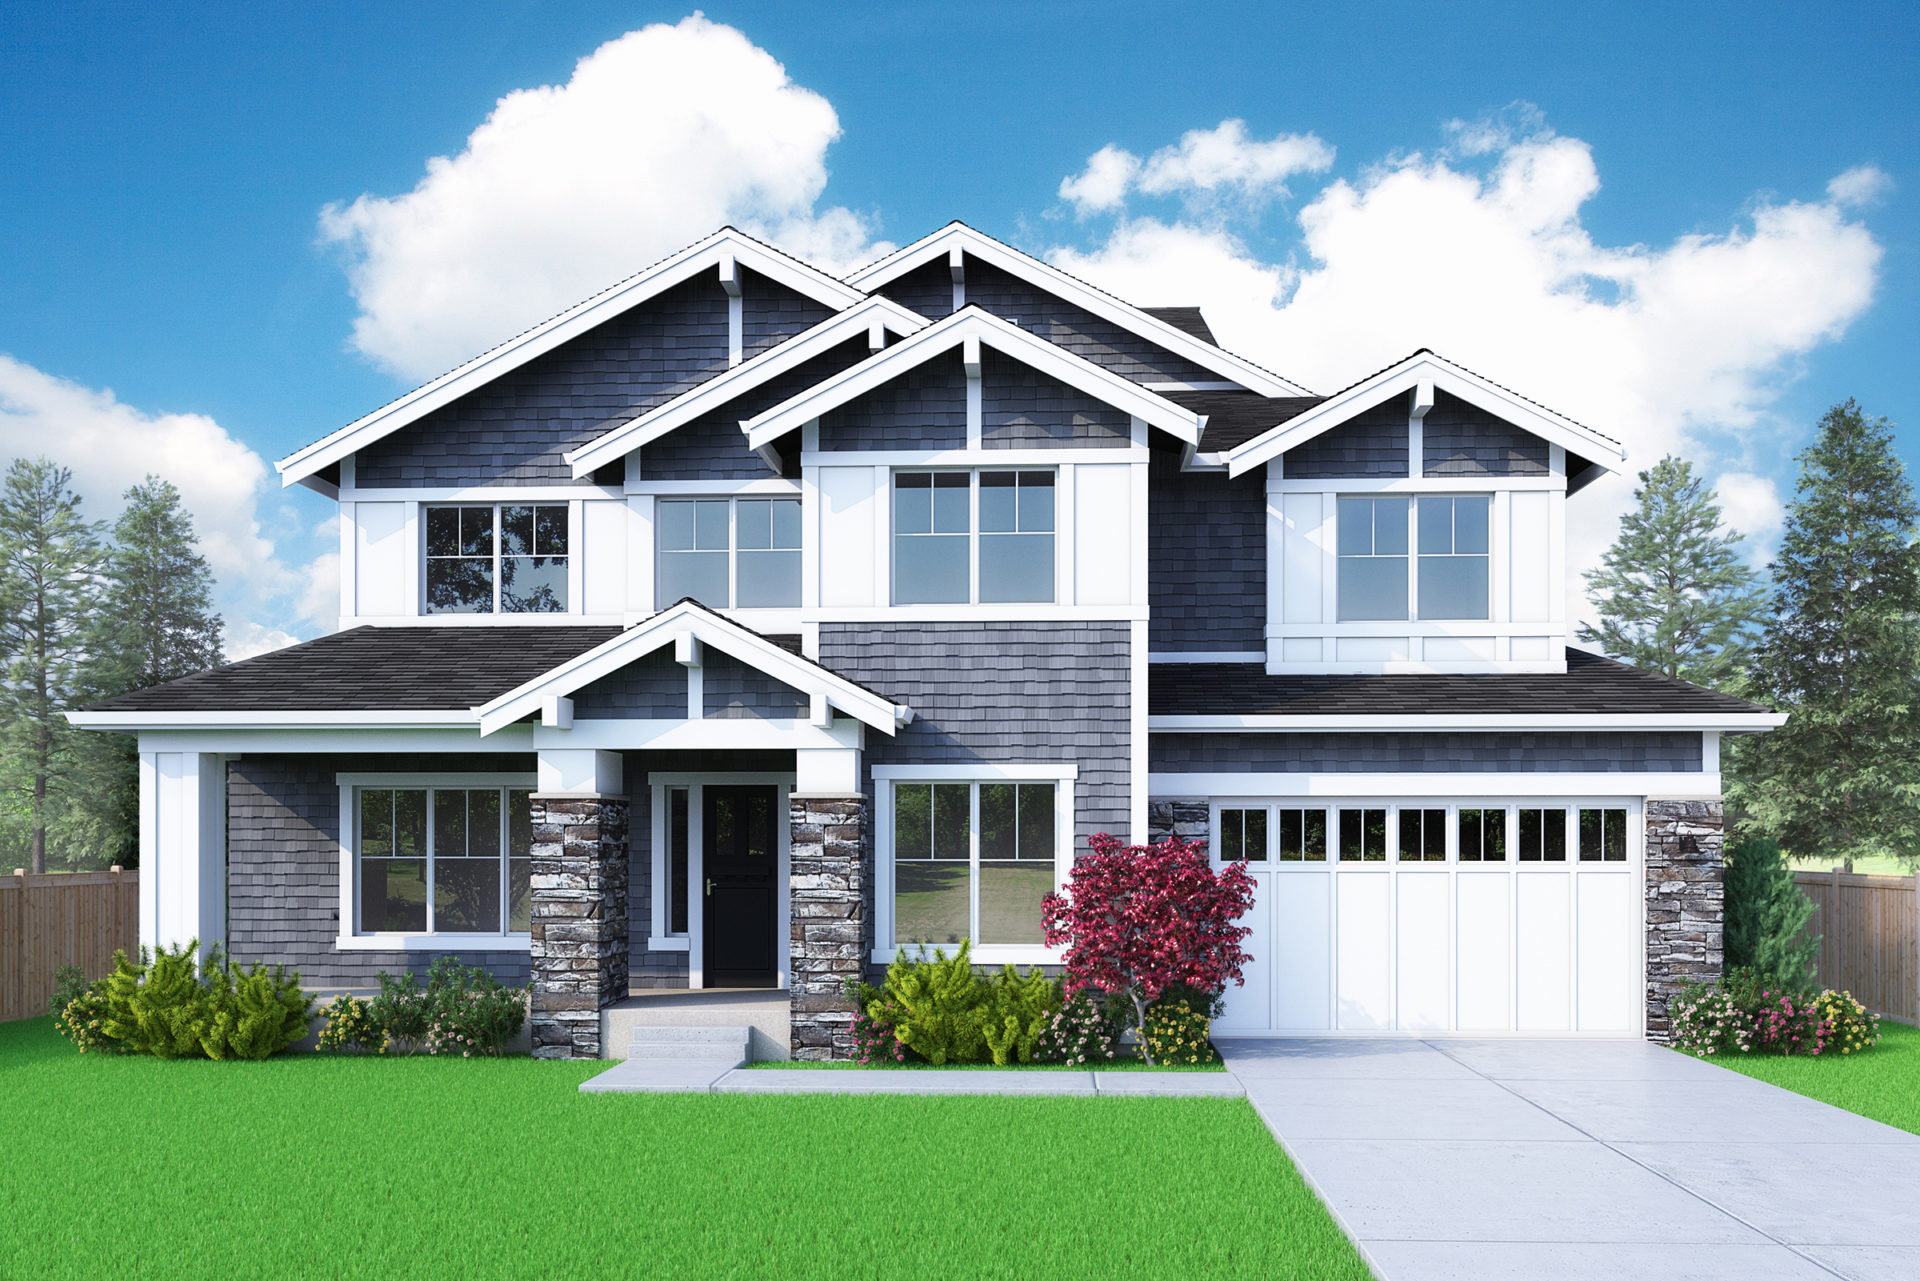 View our new luxury home construction on 13938 NE 4th CT, in Bellevue, WA from MN Custom Homes